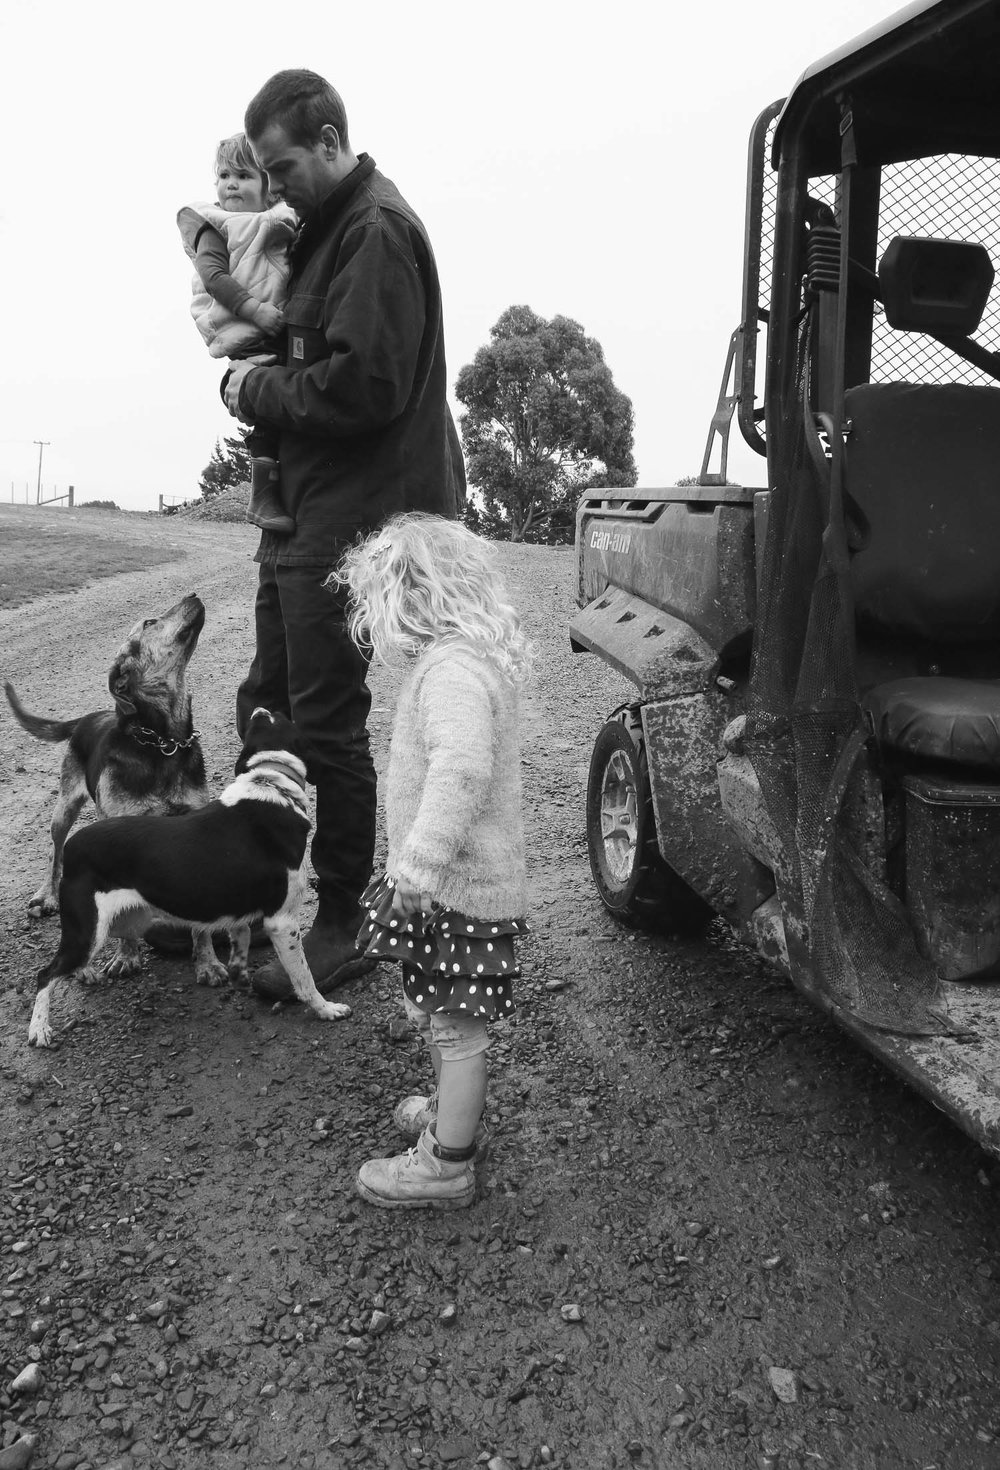 rowland-smith-shearer-standing-by-motorbike-holding-daughter-with-other-daughter-at-his-feet-dogs-around